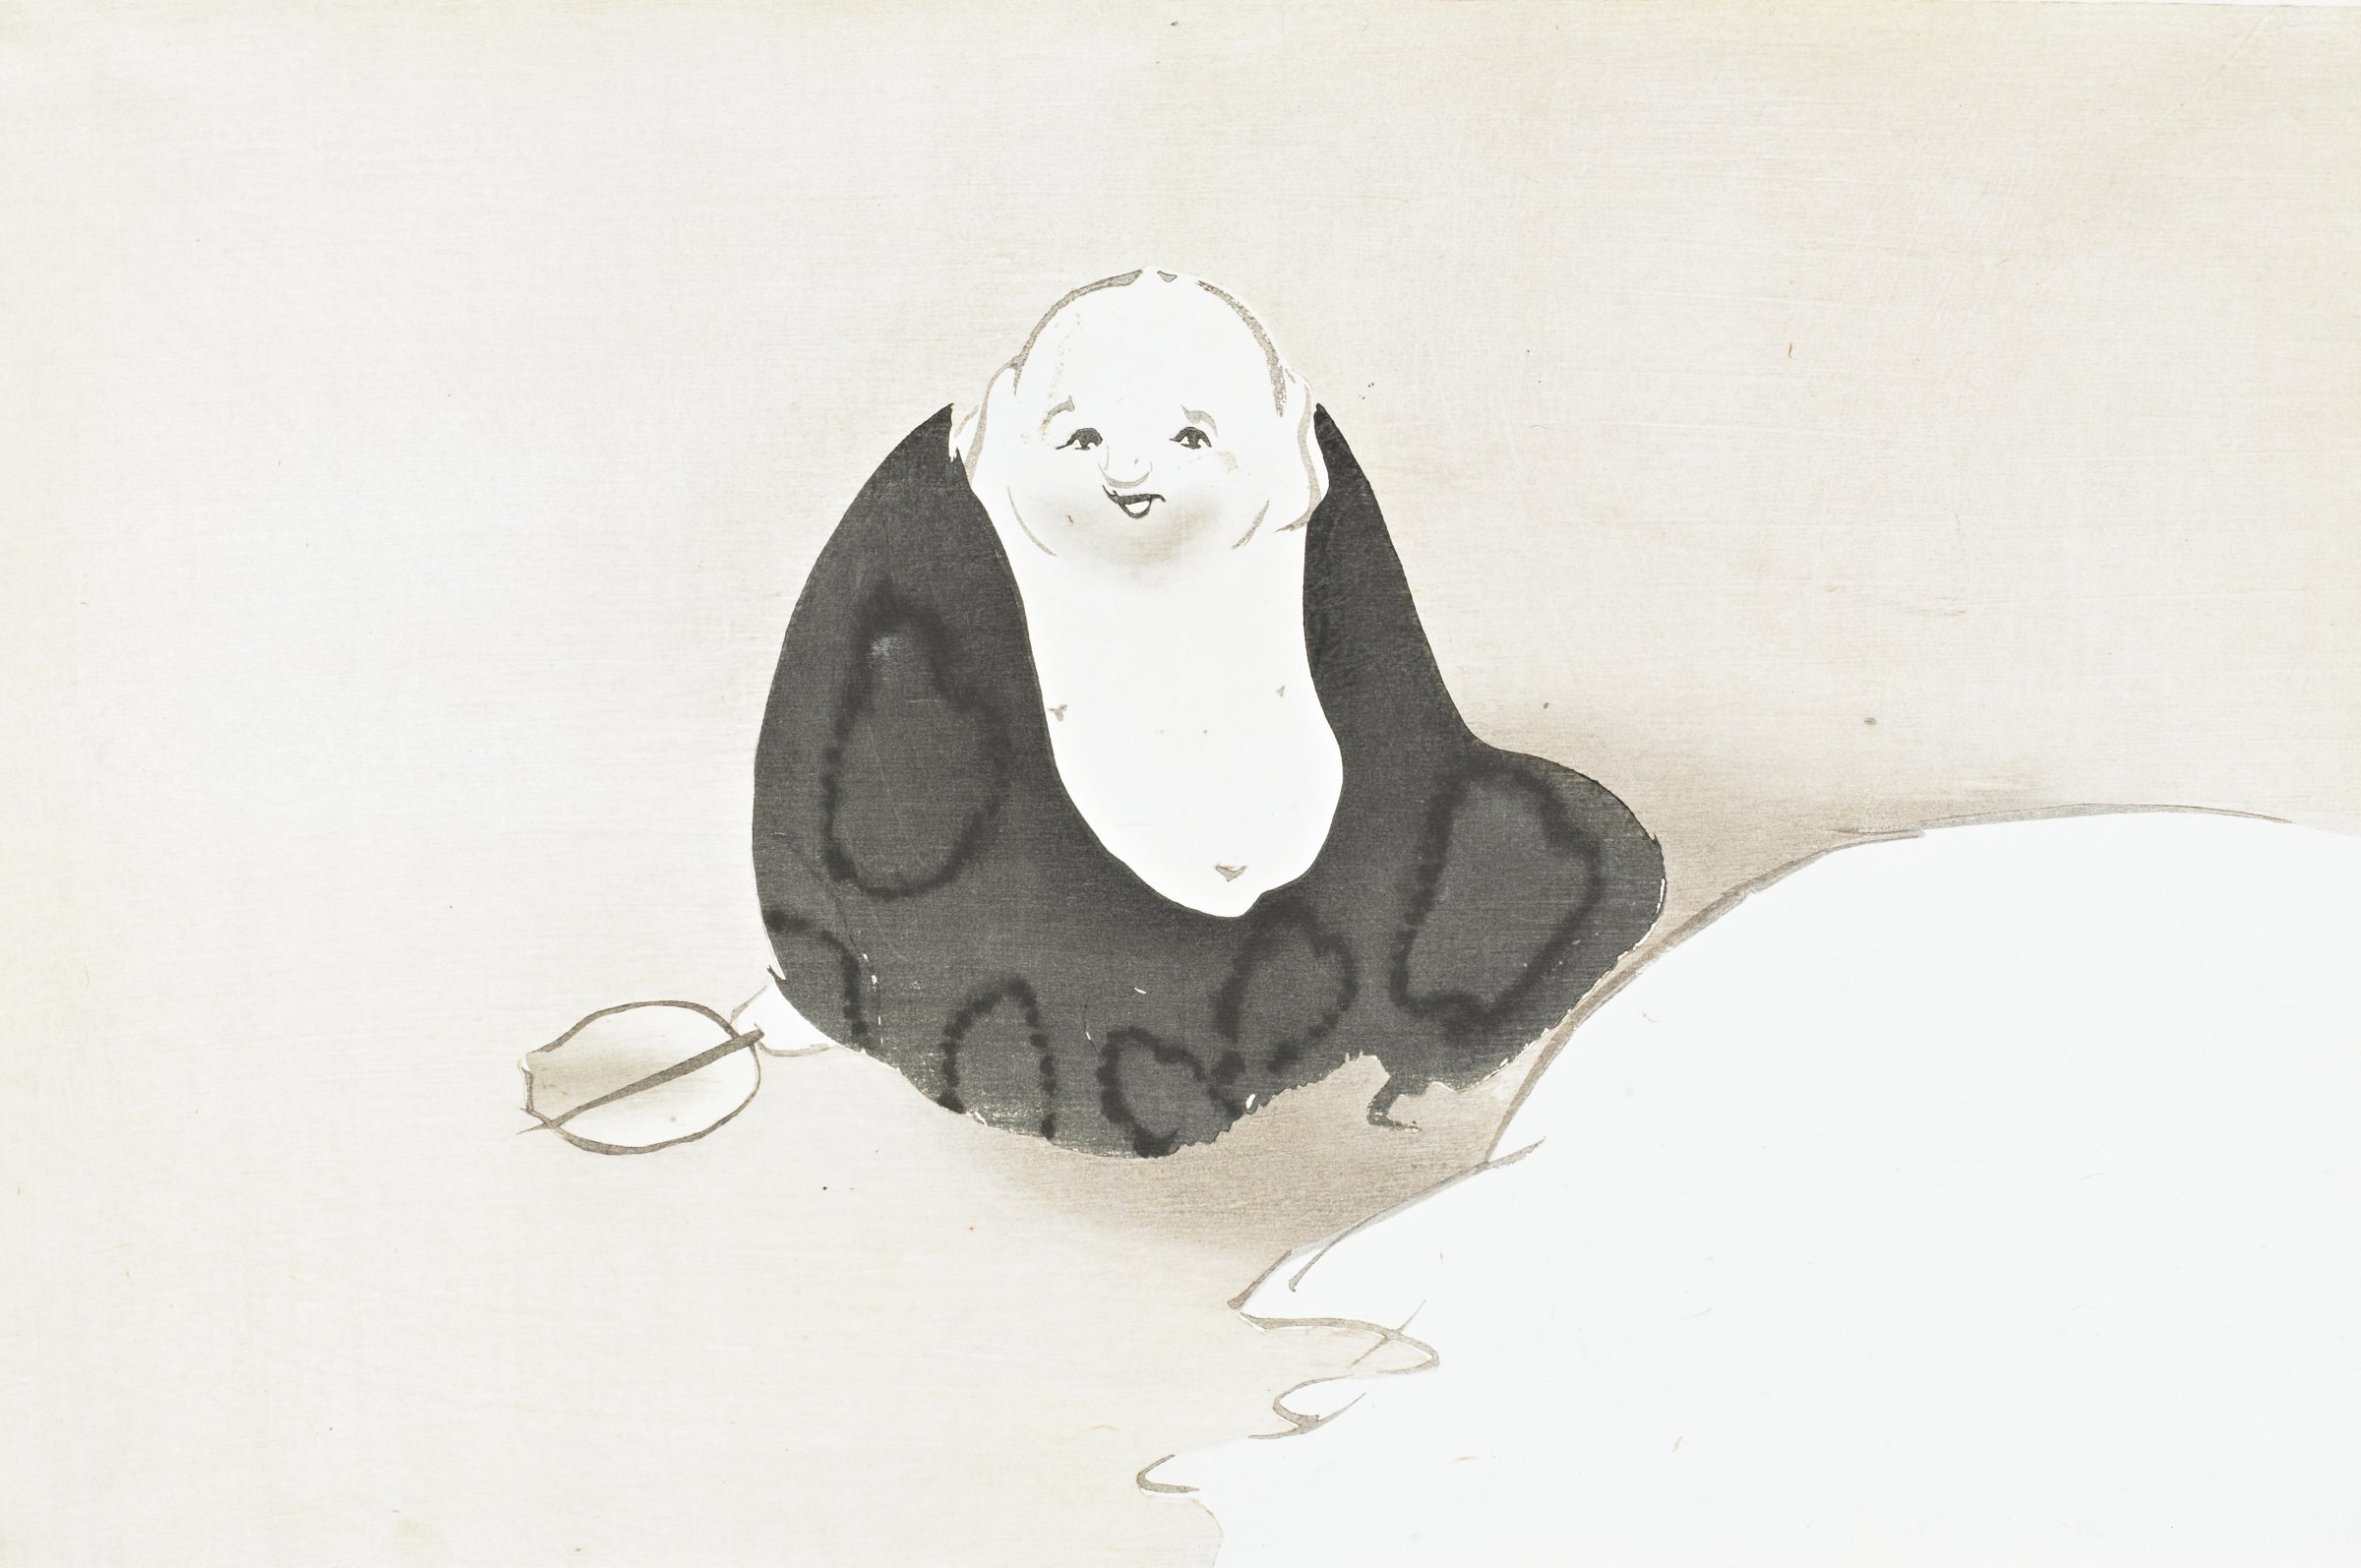 Hotei (One of the Seven Gods of Good Fortune), from Momoyogusa (A World of Things), Volume 3, Kamisaka Sekka, ink and color on paper